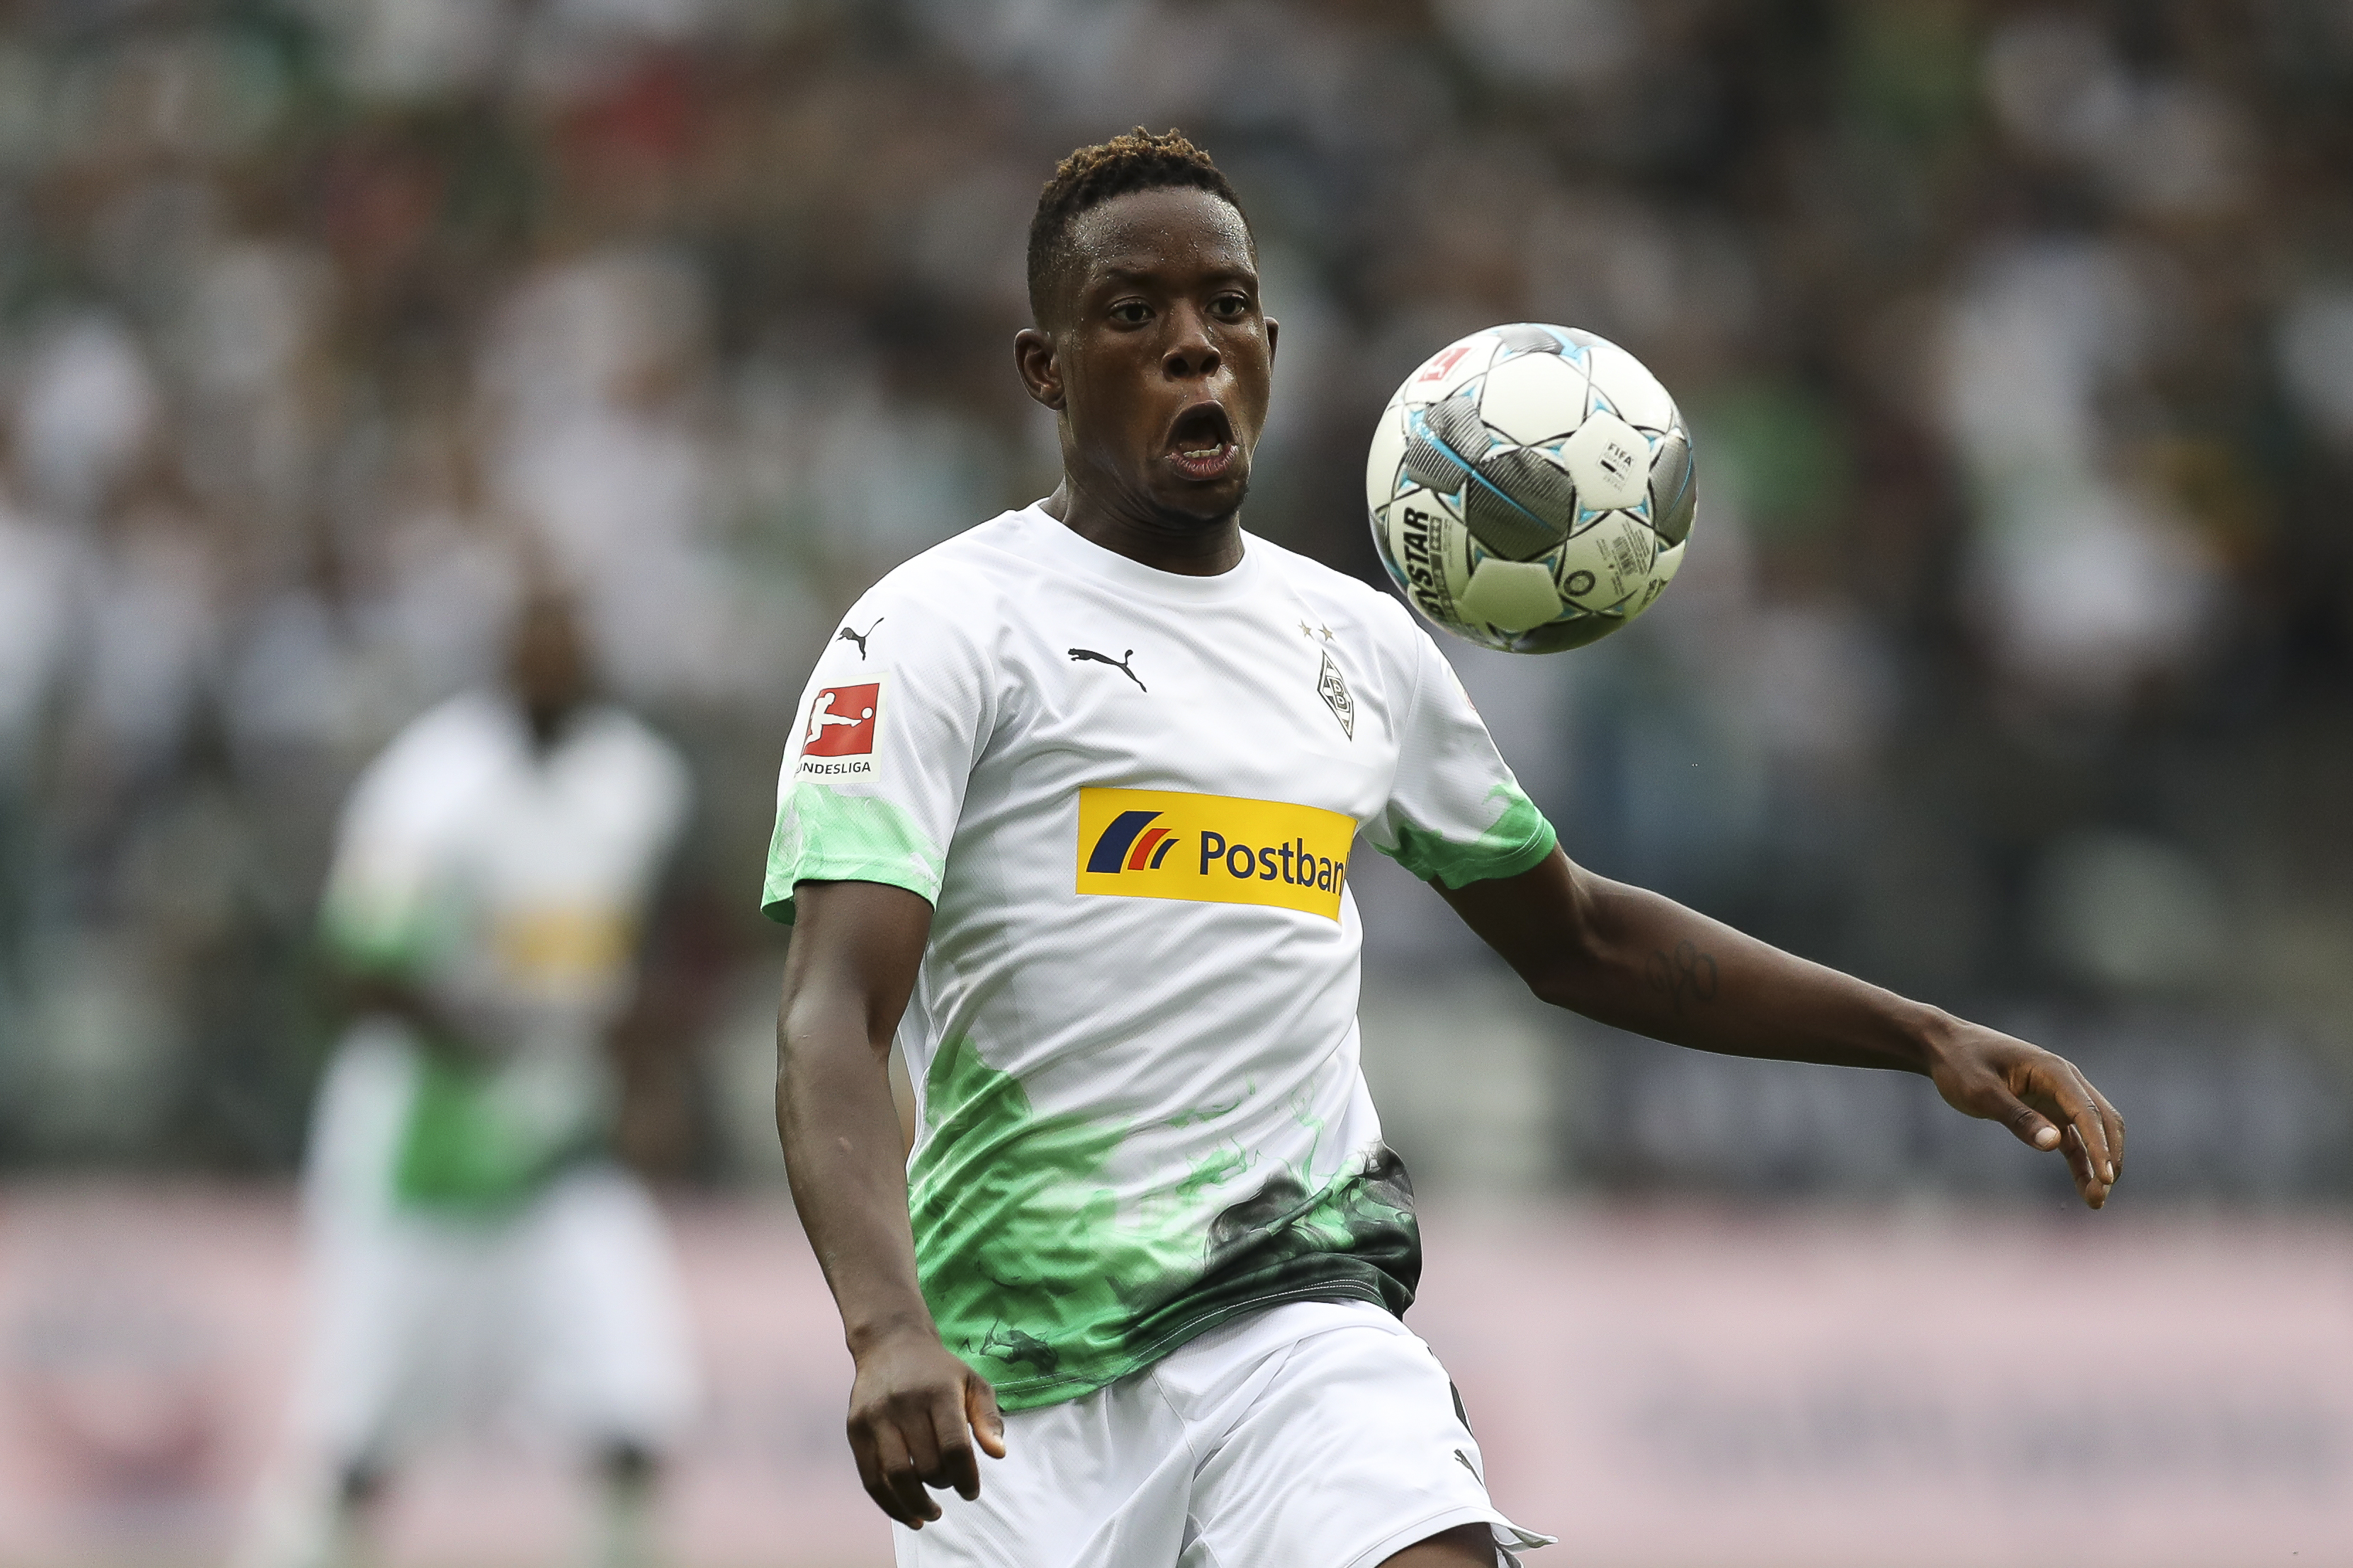 Denis Zakaria a priority target for Arsenal (Photo by Maja Hitij/Bongarts/Getty Images)